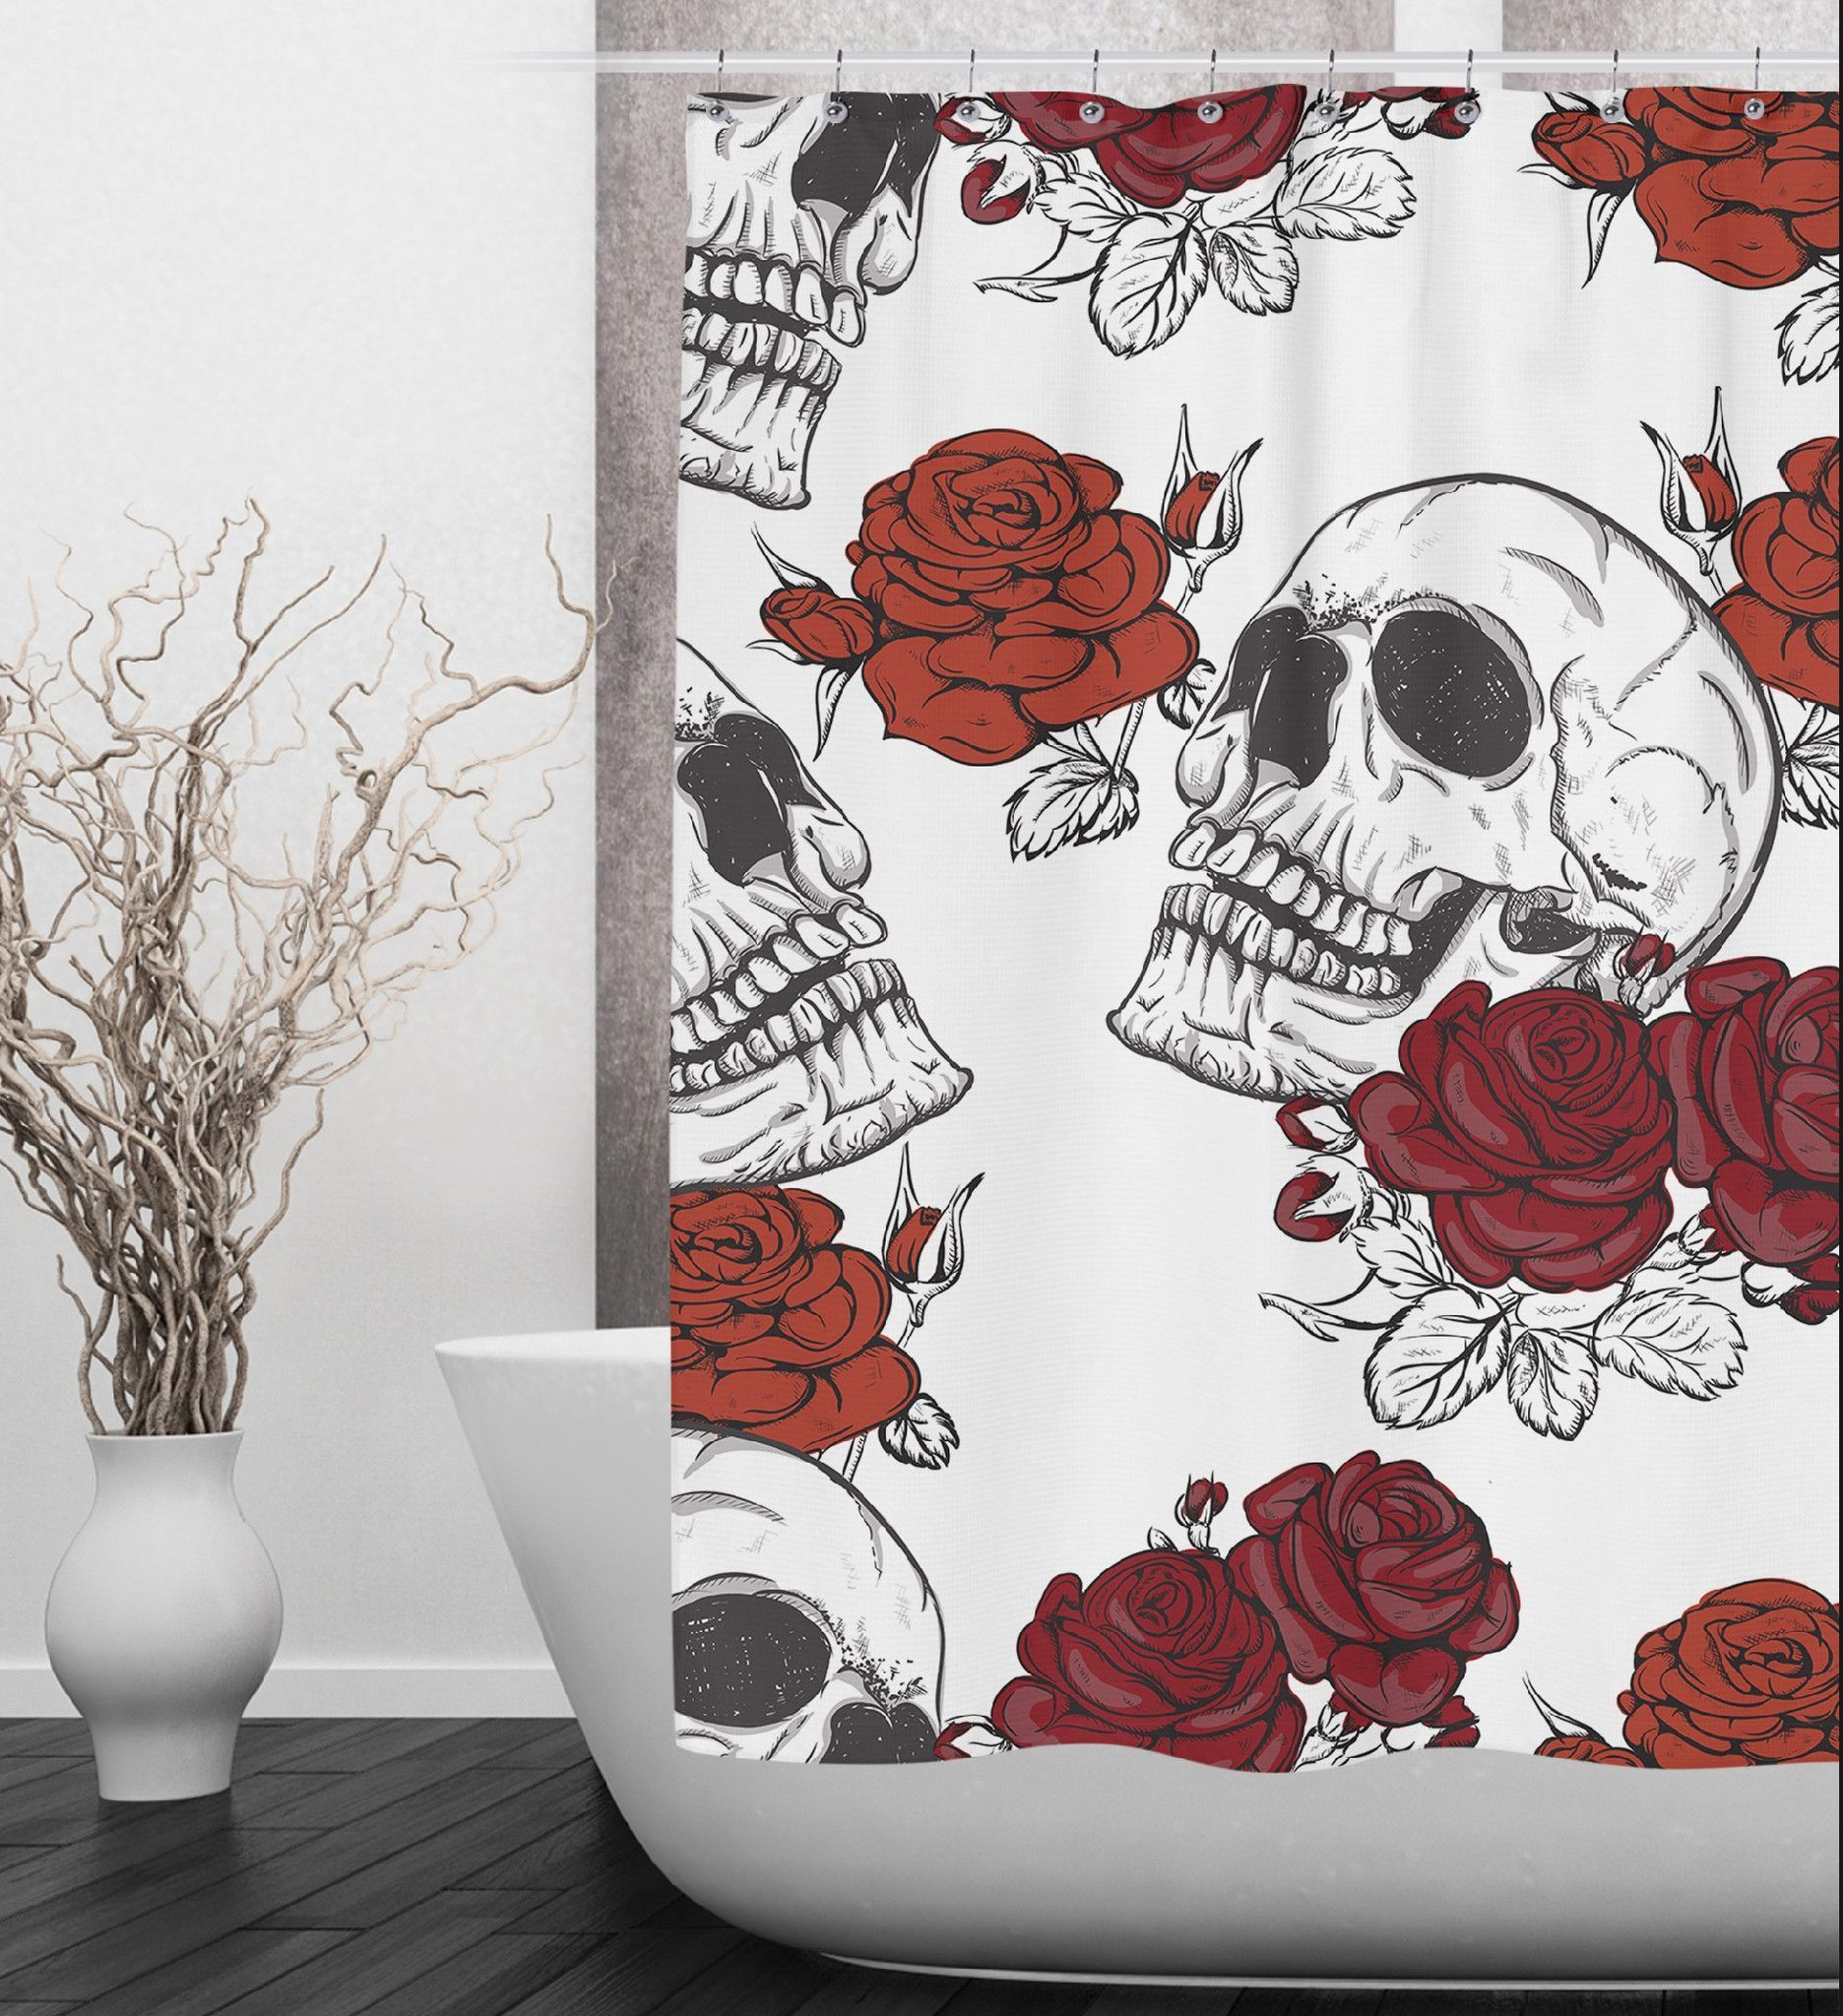 Black Book With Red Rose Shower Curtain Bathroom Decor Diy